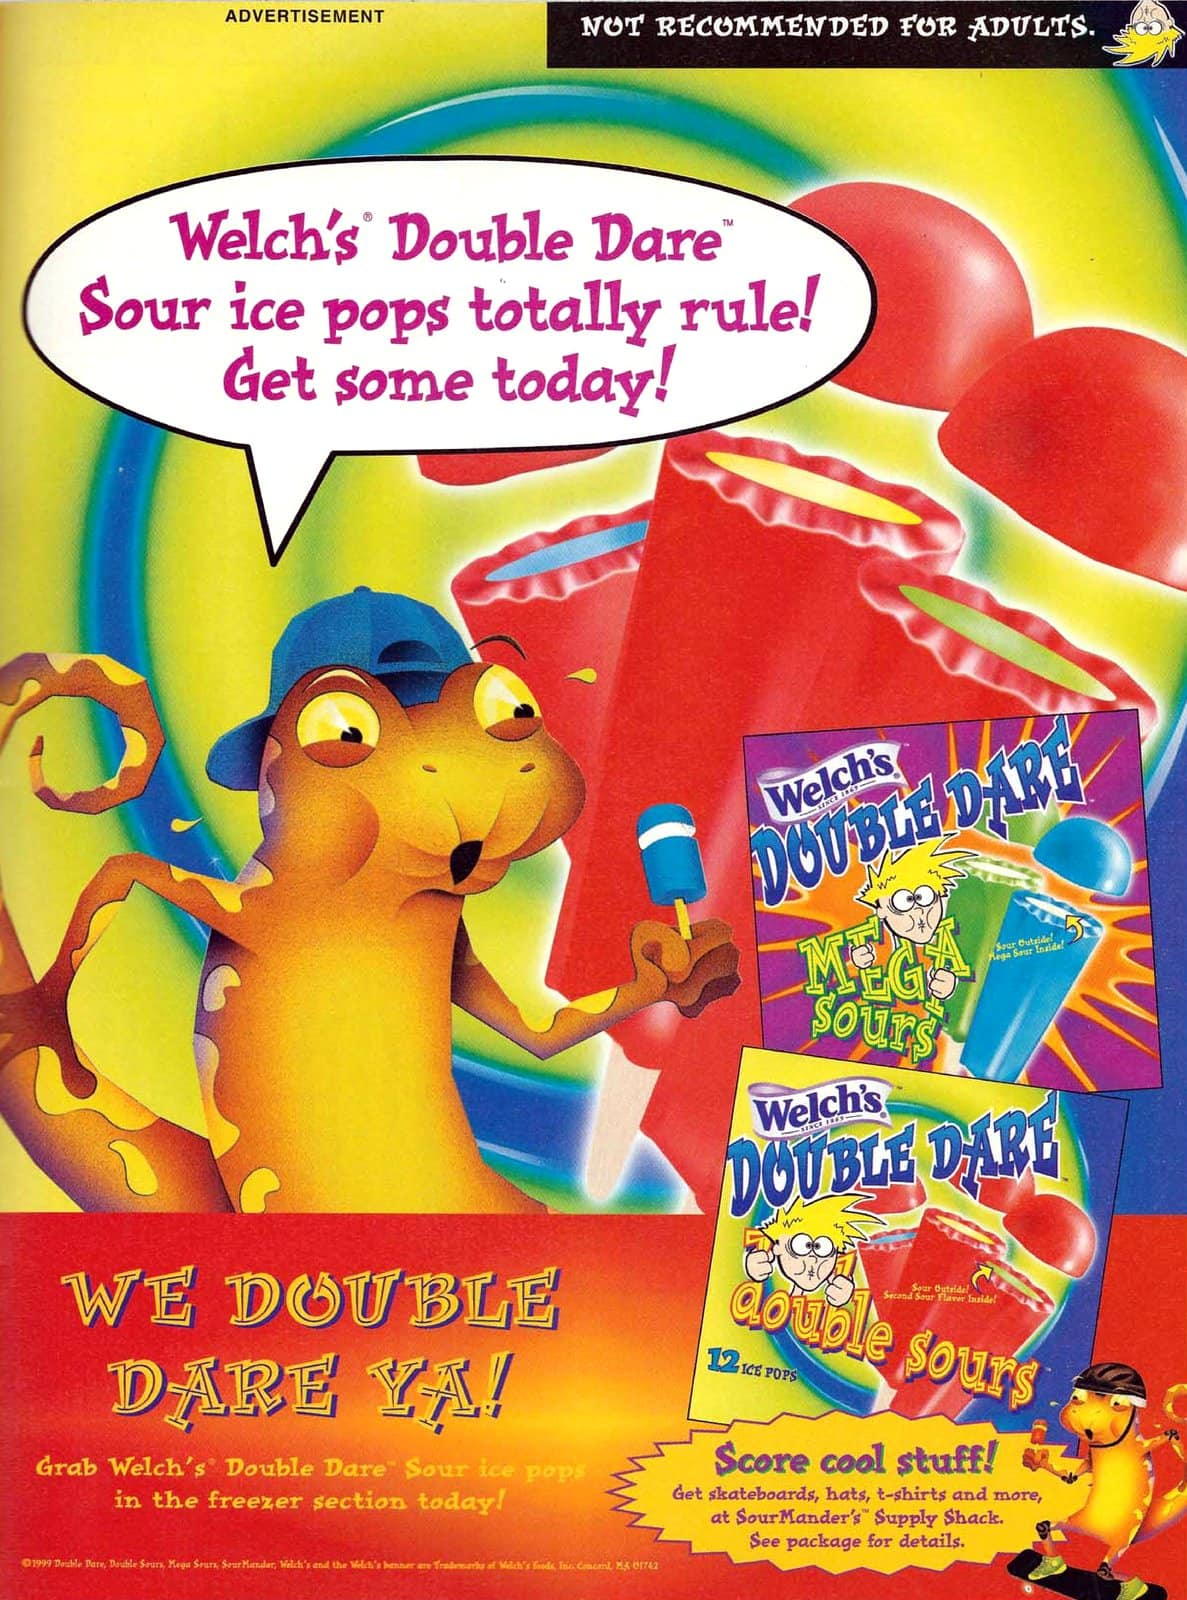 Welch's Double Dare ice pops (1999)